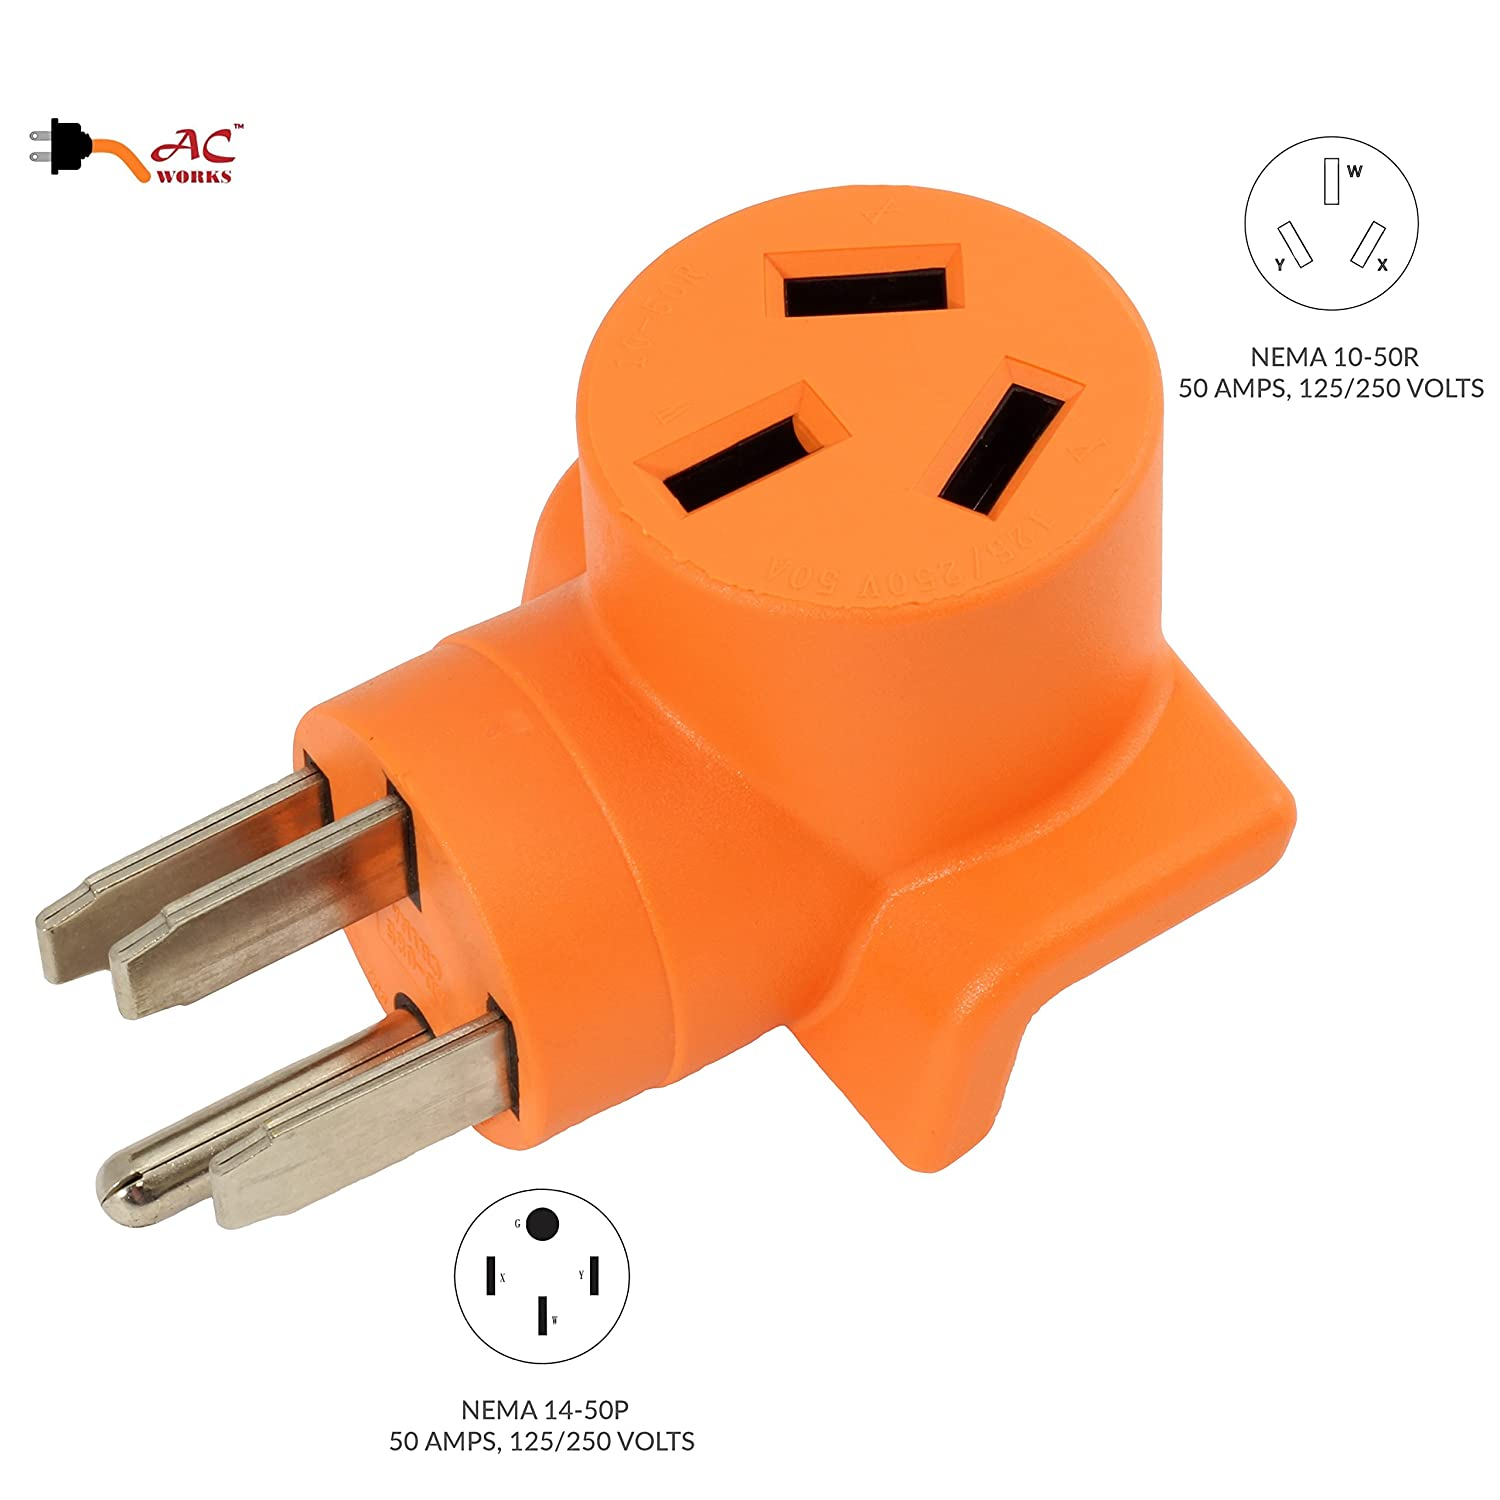 AC WORKS [WD14501050] 10-50 Welder Adapter NEMA 14-50P 50Amp RV/ Range/  Generator Male Plug to 10-50R Welder outlet Adapter - - Amazon.com